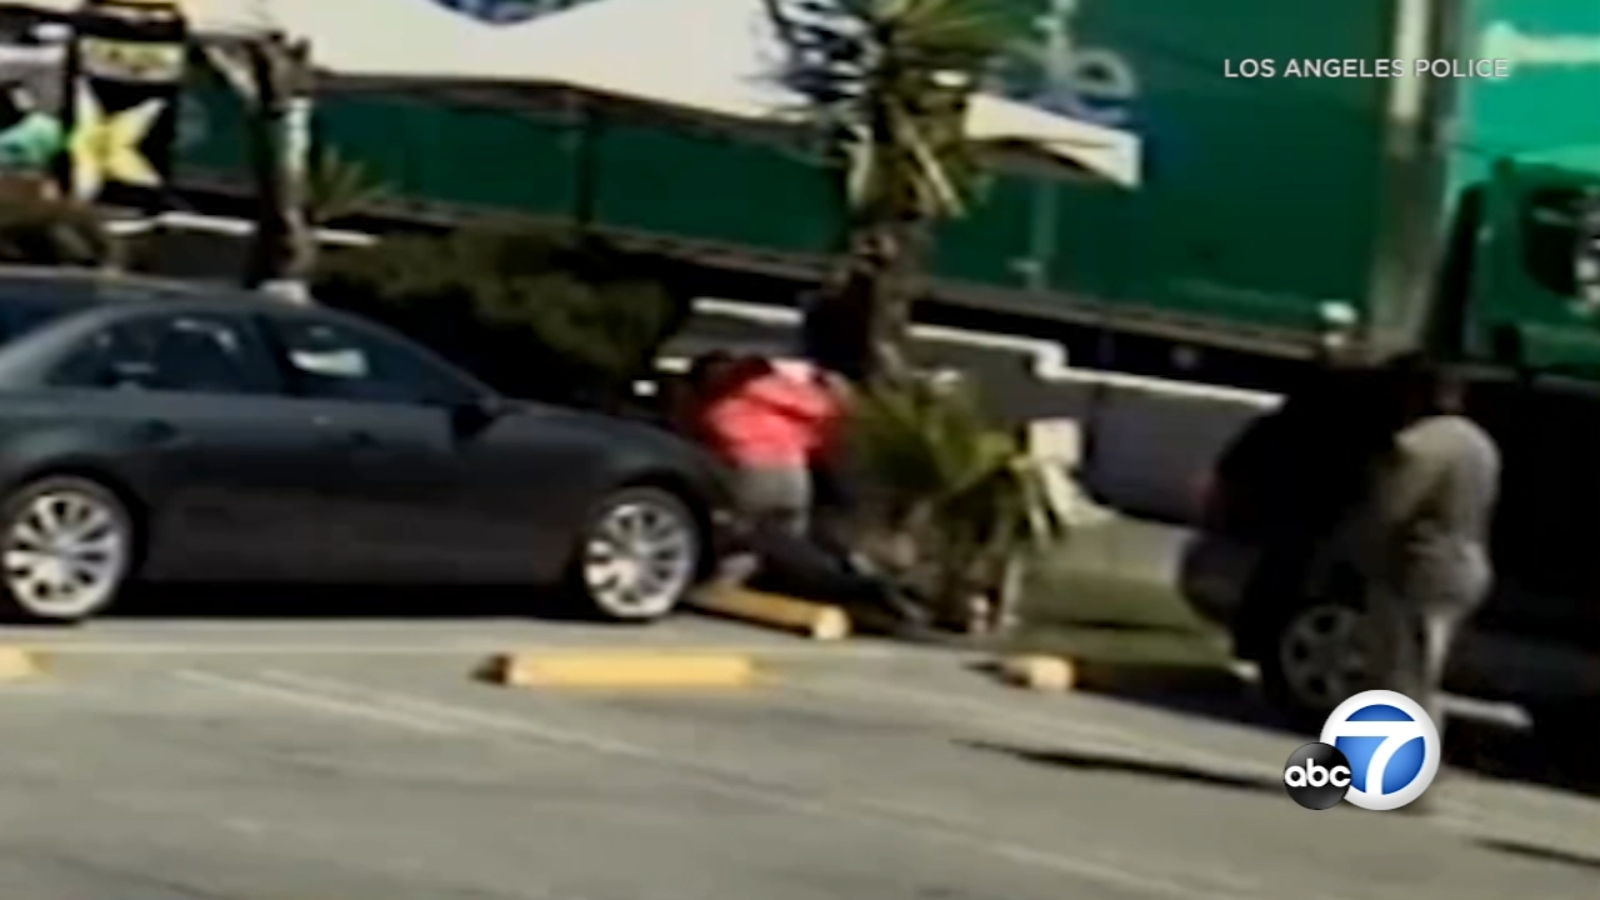 VIDEO: Man fatally beaten outside taco truck in Hollywood